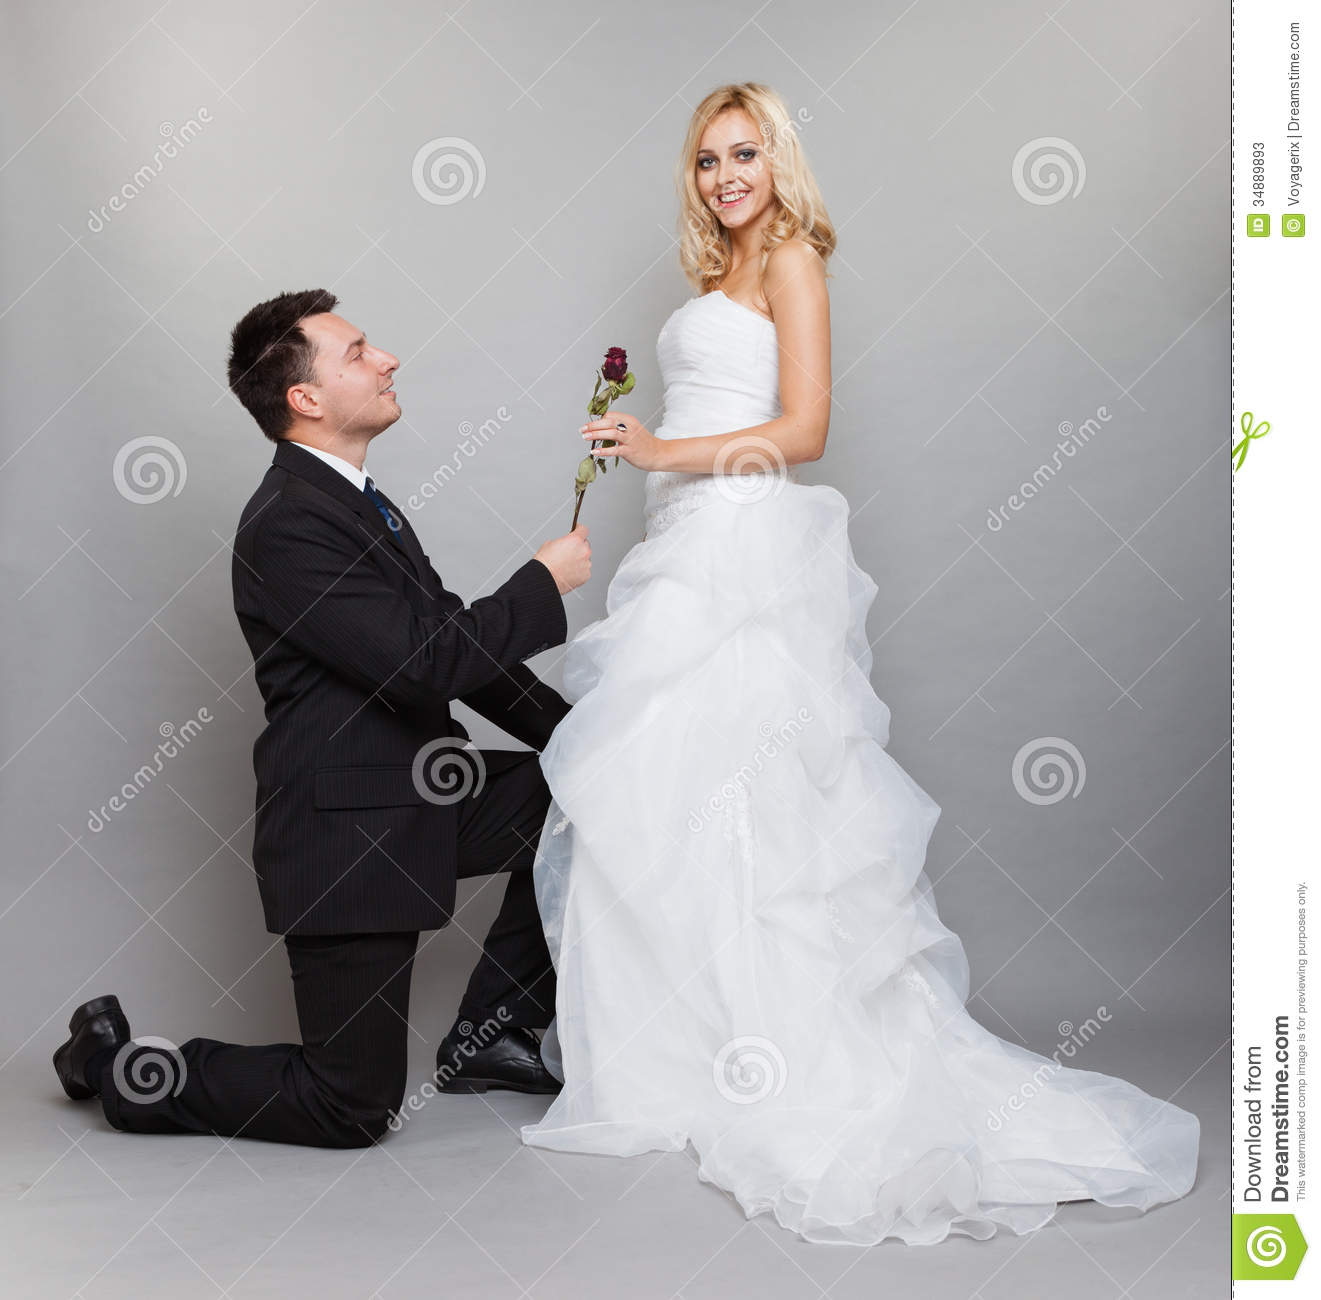 Romantic Married Couple Bride And Groom With Rose Stock